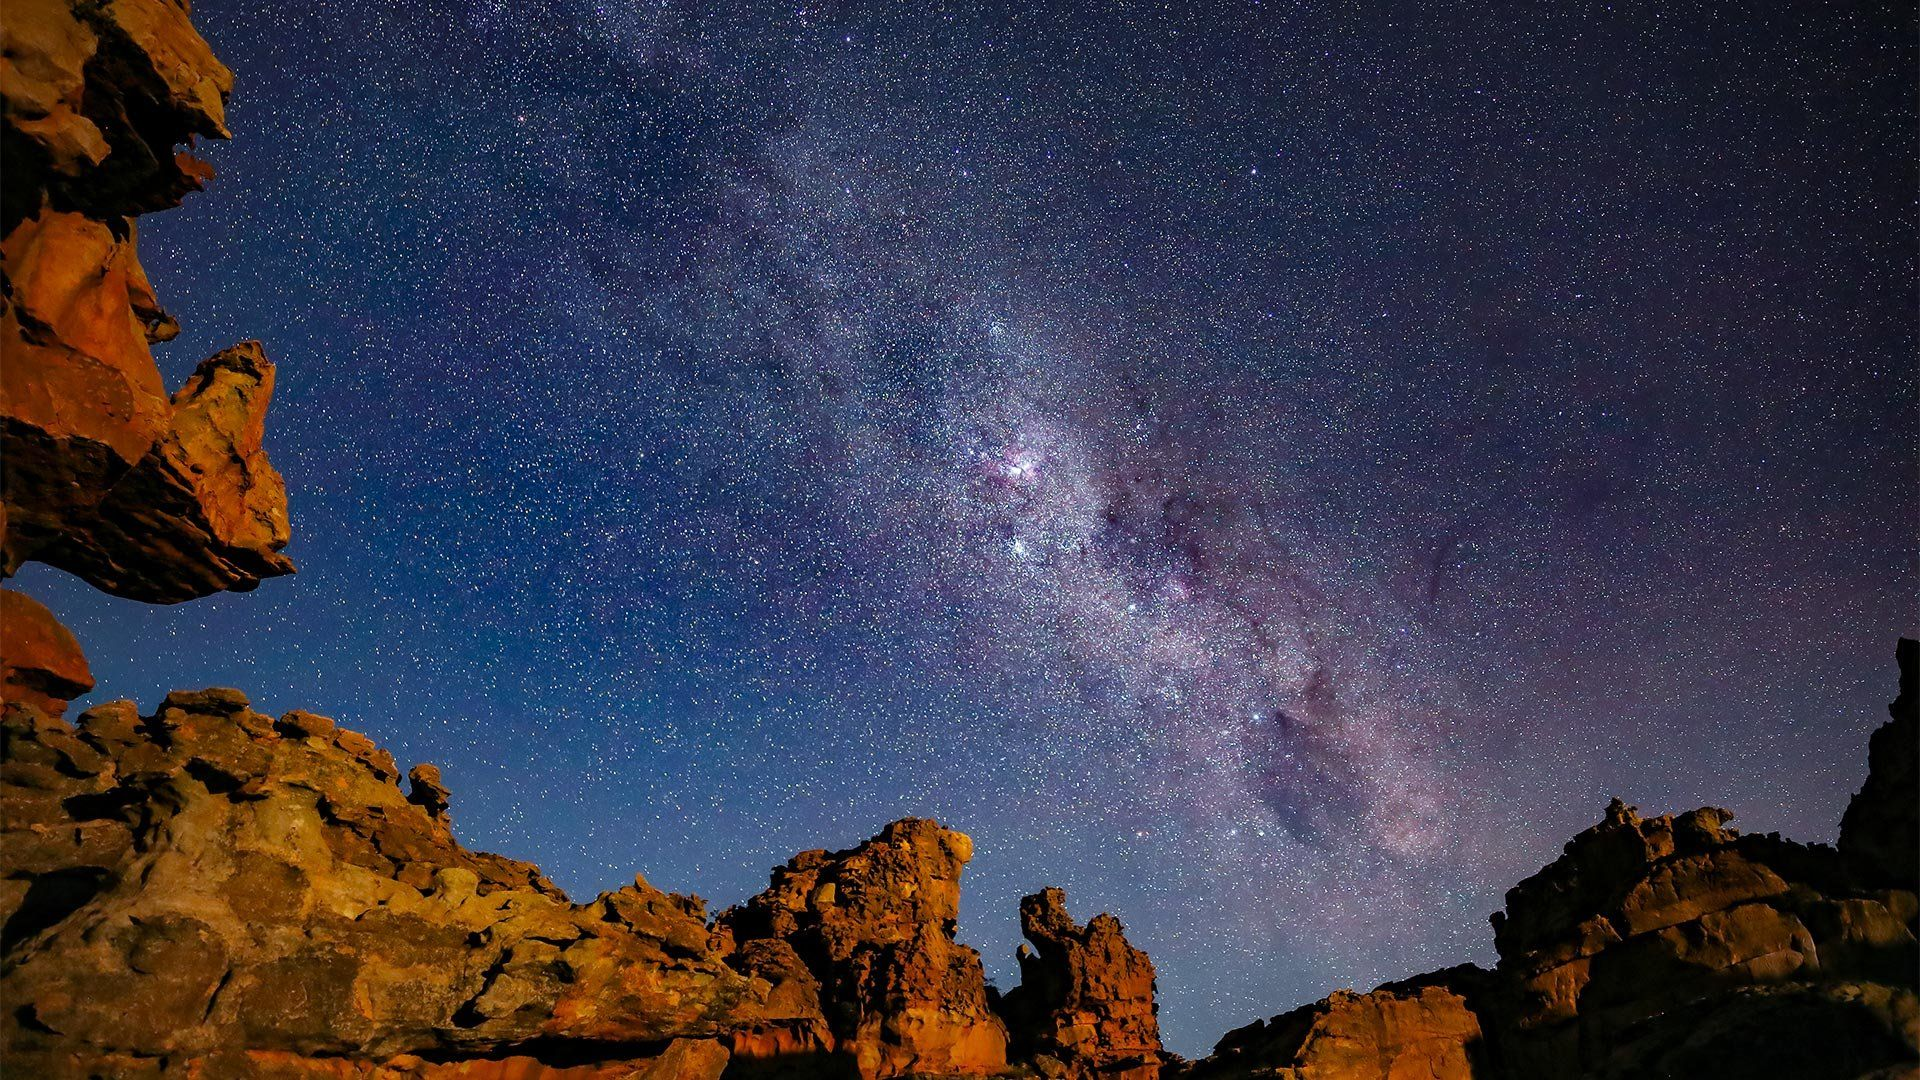 The Milky Way in a star-filled sky, above rugged cliffs in the foreground.